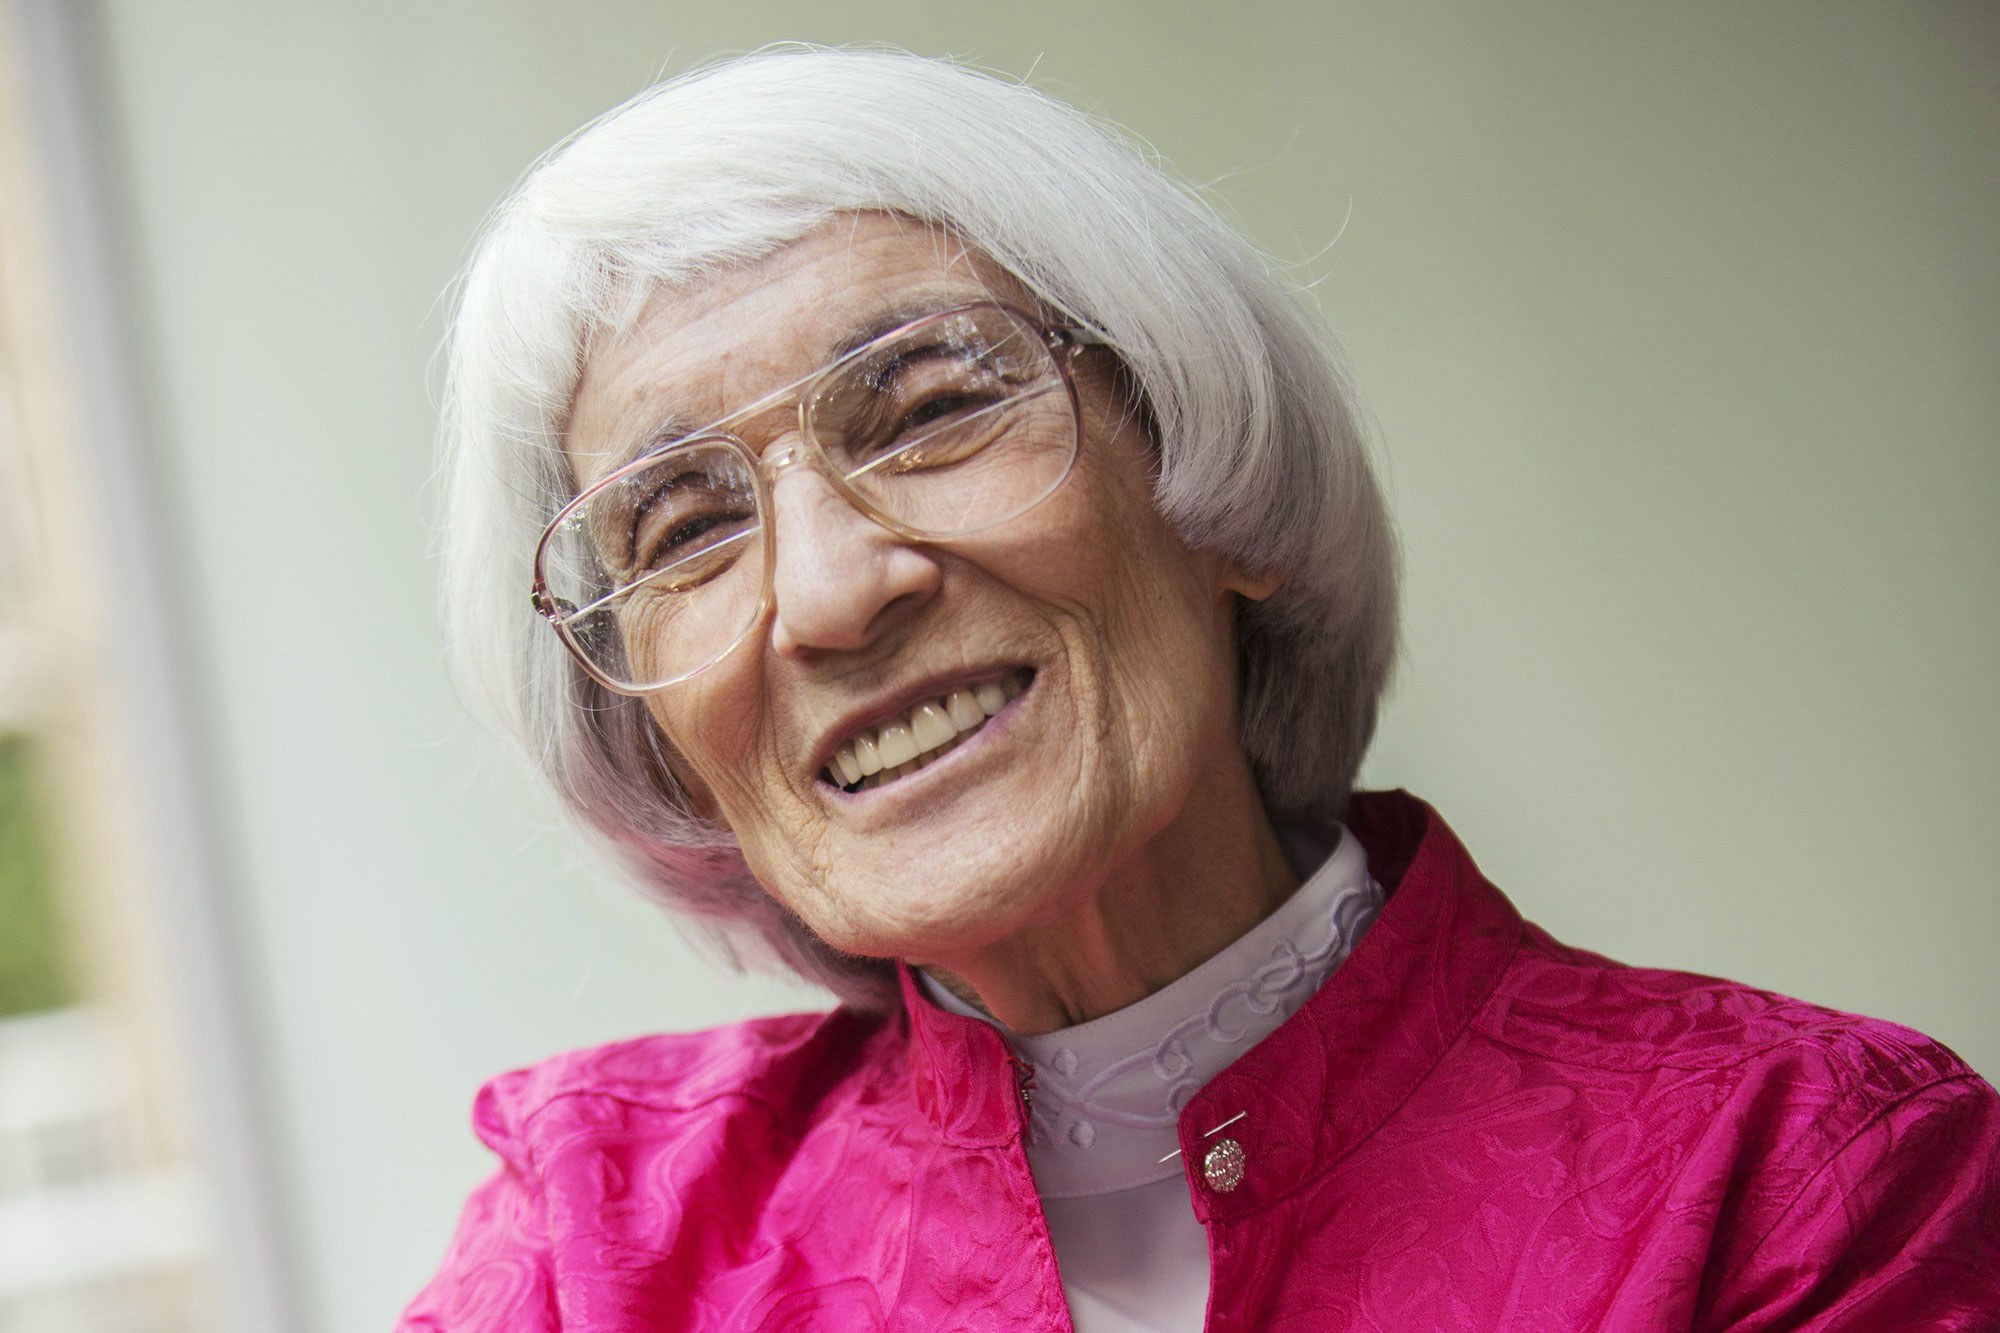 """Bernice Sandler - Bernice Sandler earned a bachelor's degree in psychology in 1948. Two years later she earned a master's degree in the same field. Two years after that she married her husband Jerrold Sandler, and proceeded to produce 2 daughters in two year intervals. During this time she worked on, and ultimately earned, a Ph. D. in education (awarded in 1968). After earning her degree she was denied a full time teaching position at the university level because """"she was just a woman who went back to school."""" In another case she was denied an academic job because """"she came on too strong for a woman.""""As a child Bernice had always wanted to do things that boys could do, but she was denied participation. So, she became a woman's advocate. By 1971 she was serving as the deputy director of the Women's Action Program within the Department of Health and Human Services. That same year she became the Director of the Project on the Status of Woman. She served in that capacity for two decades. Over that time she consulted extensively with colleges and universities on their admission policies and the assimilation of women into the campus community. In addition, she became the chair of the National Advisory Council on the Status of Women in 1975, an associate in the Women's Institute for the Freedom of the Press in 1977, and following her retirement from the director position, she served as a senior associate at the Center for Women Policy Studies in Washington, D.C. Over her professional career she wrote three books and earned numerous awards.But, Bernice's most important contribution was filing a class action lawsuit in 1970 in conjunction with the Women's Action Equity League. Over the years she would file more than 250 complaints against numerous institutes of higher learning with respect to their treatment of women. In her preparatory research, she discovered that President Johnson had signed legislation that barred organizations with federal contracts from discriminating """